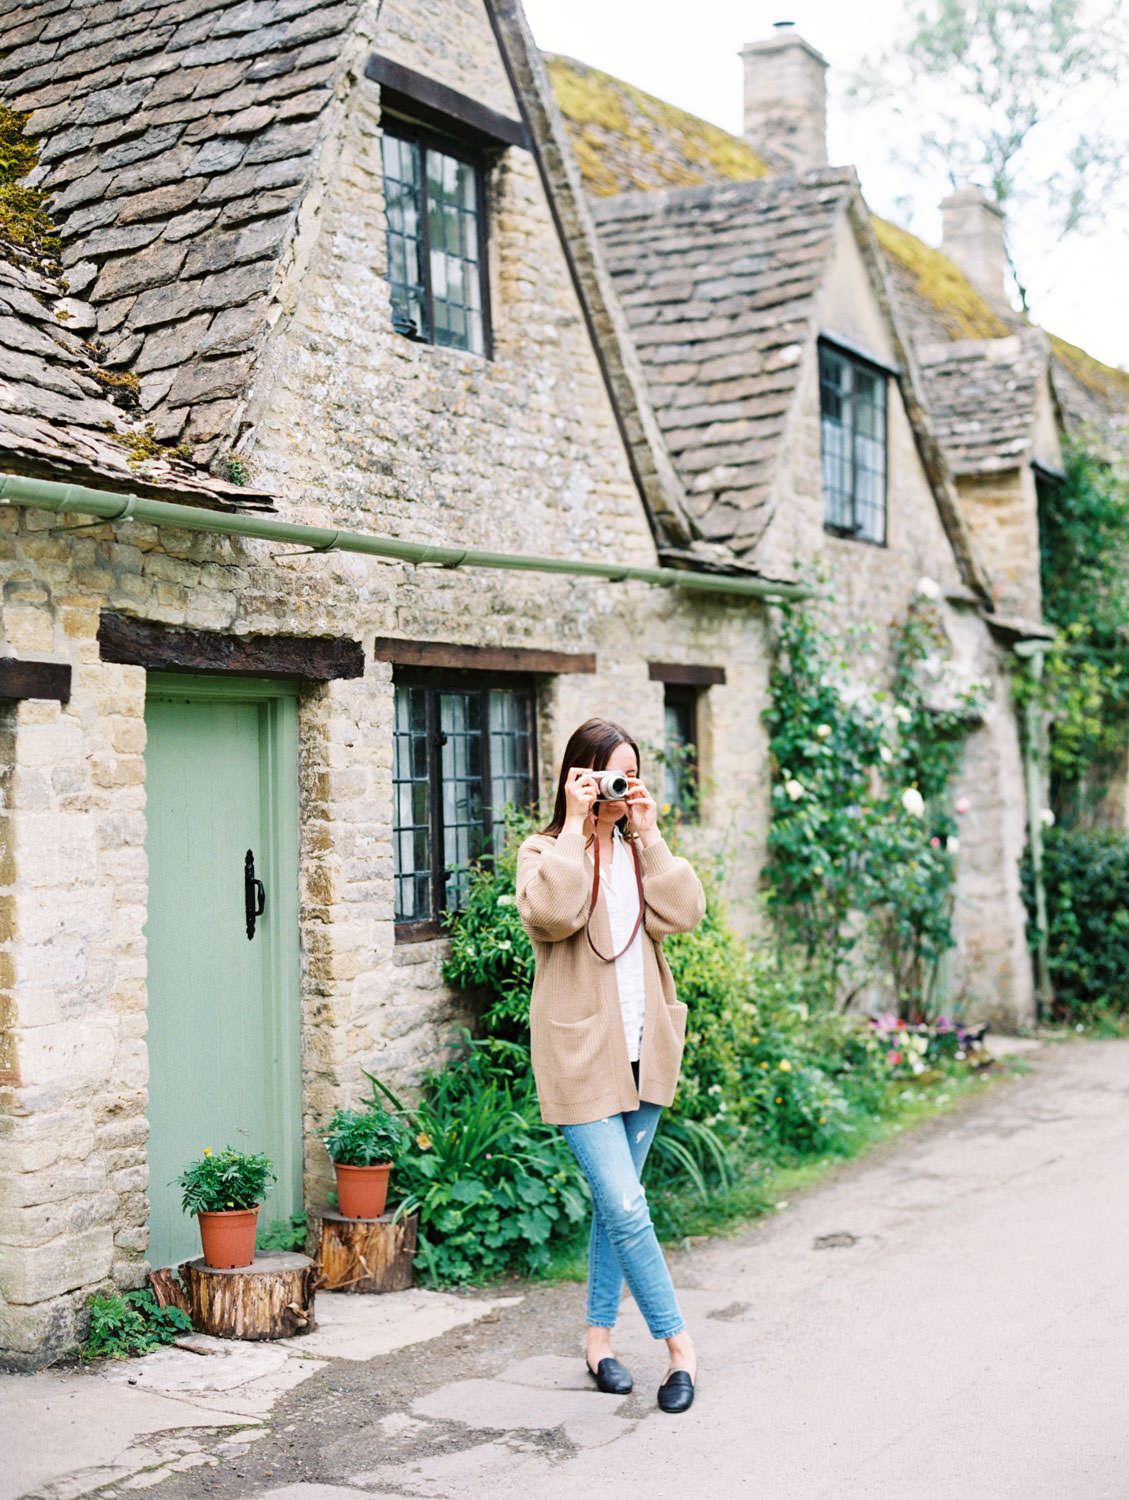 Woman in beige sweater and jeans taking a photo. Bibury village house with in the Cotswolds. Flutter Magazine Retreat in the Cotswolds, England. Photo by Cavin Elizabeth Photography on film